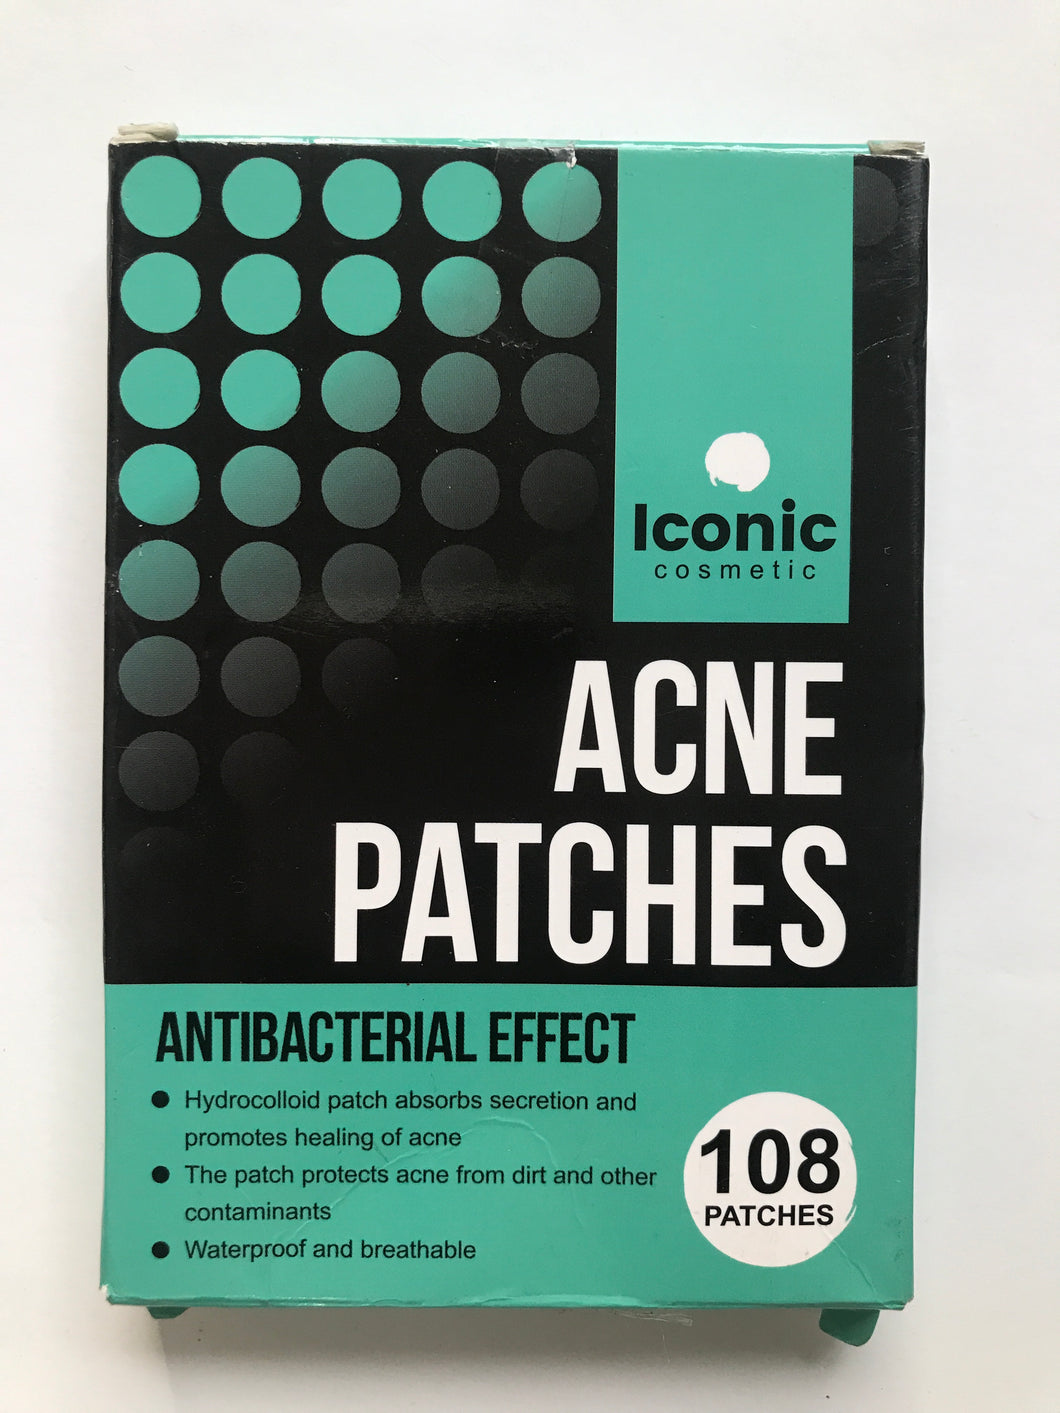 Iconic Acne Patches